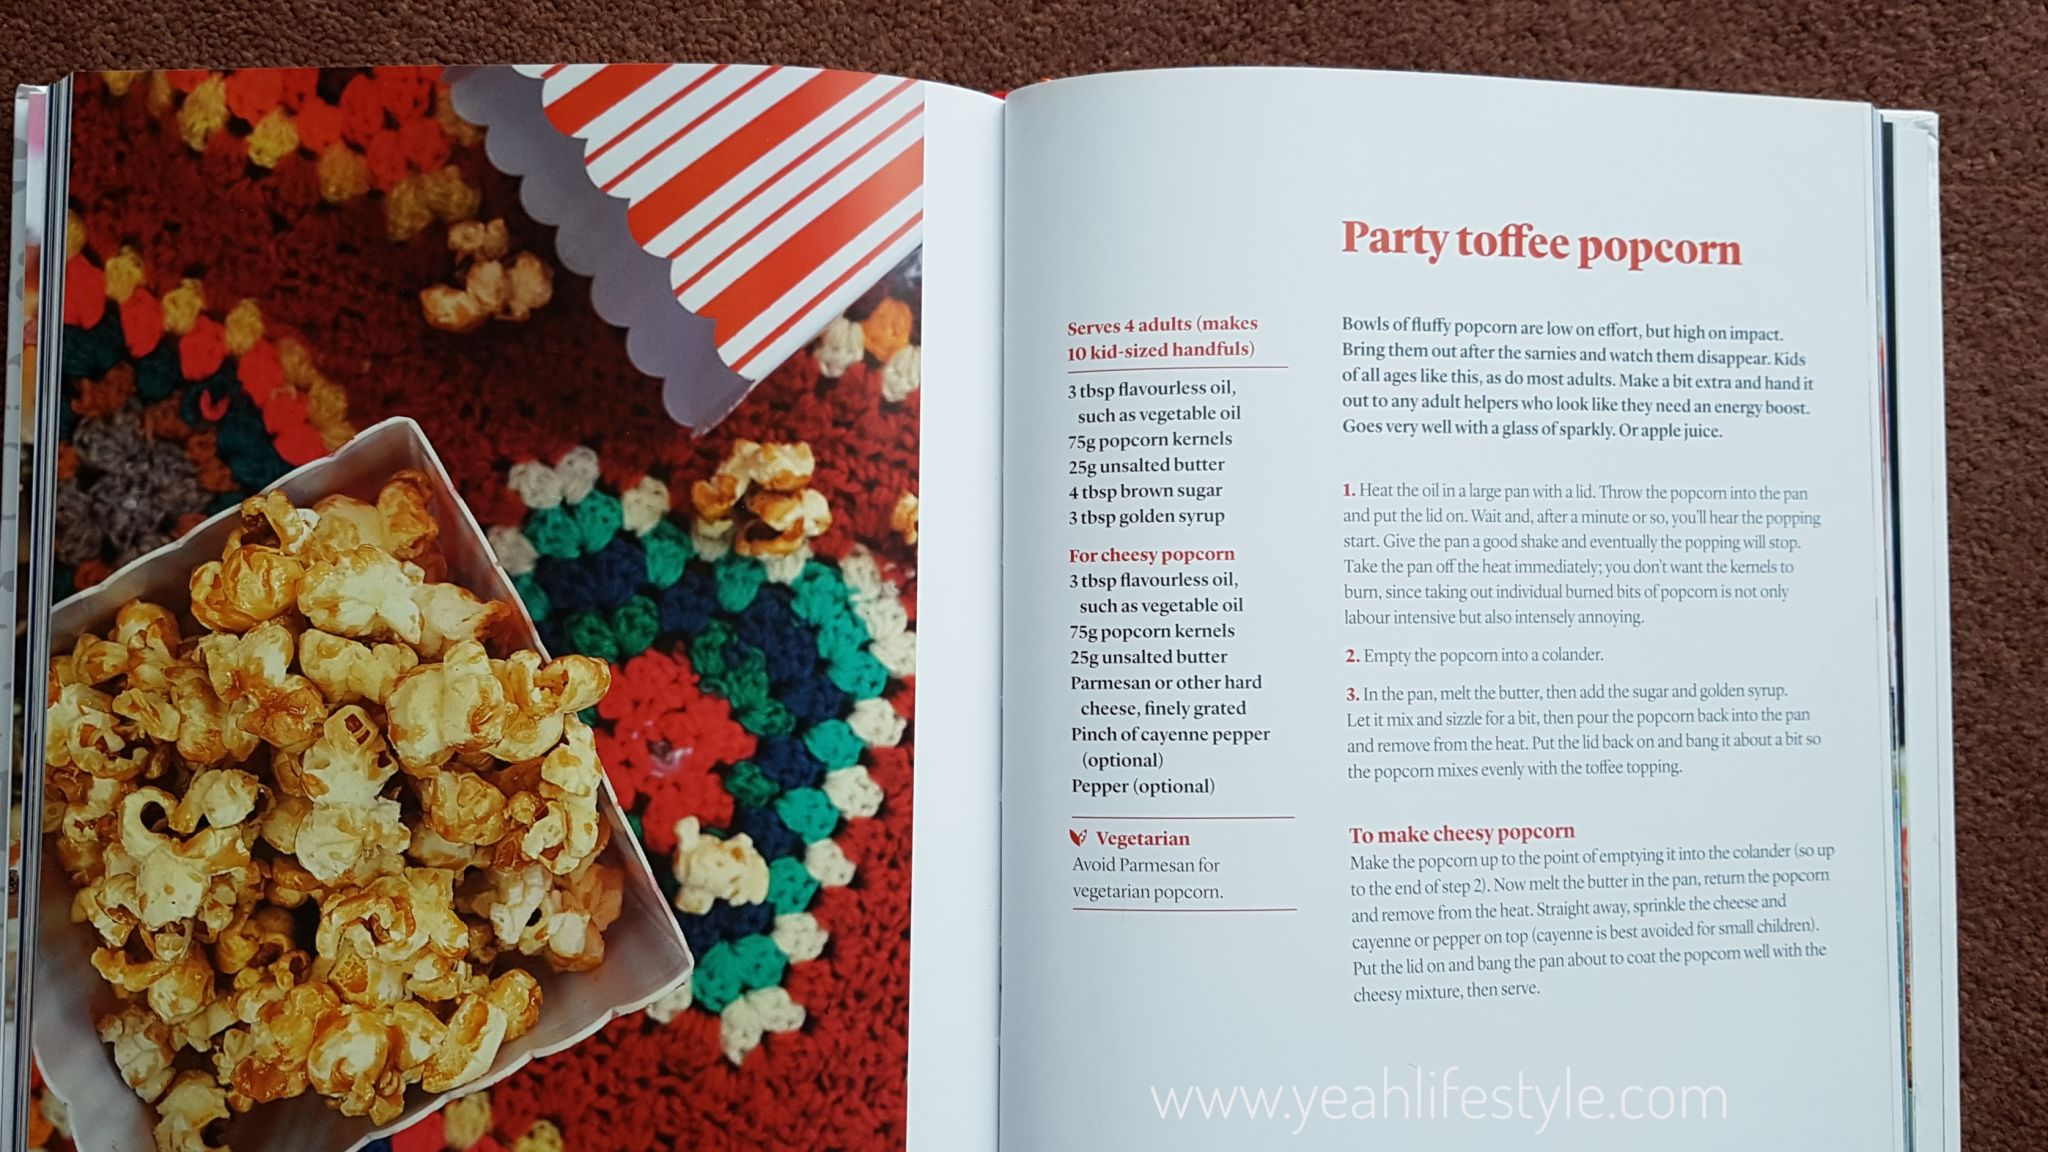 Mumsnet top bananas blogger book review kids food recipes party mumsnet top bananas blogger book review kids food recipes party toffee popcorn recipe forumfinder Choice Image